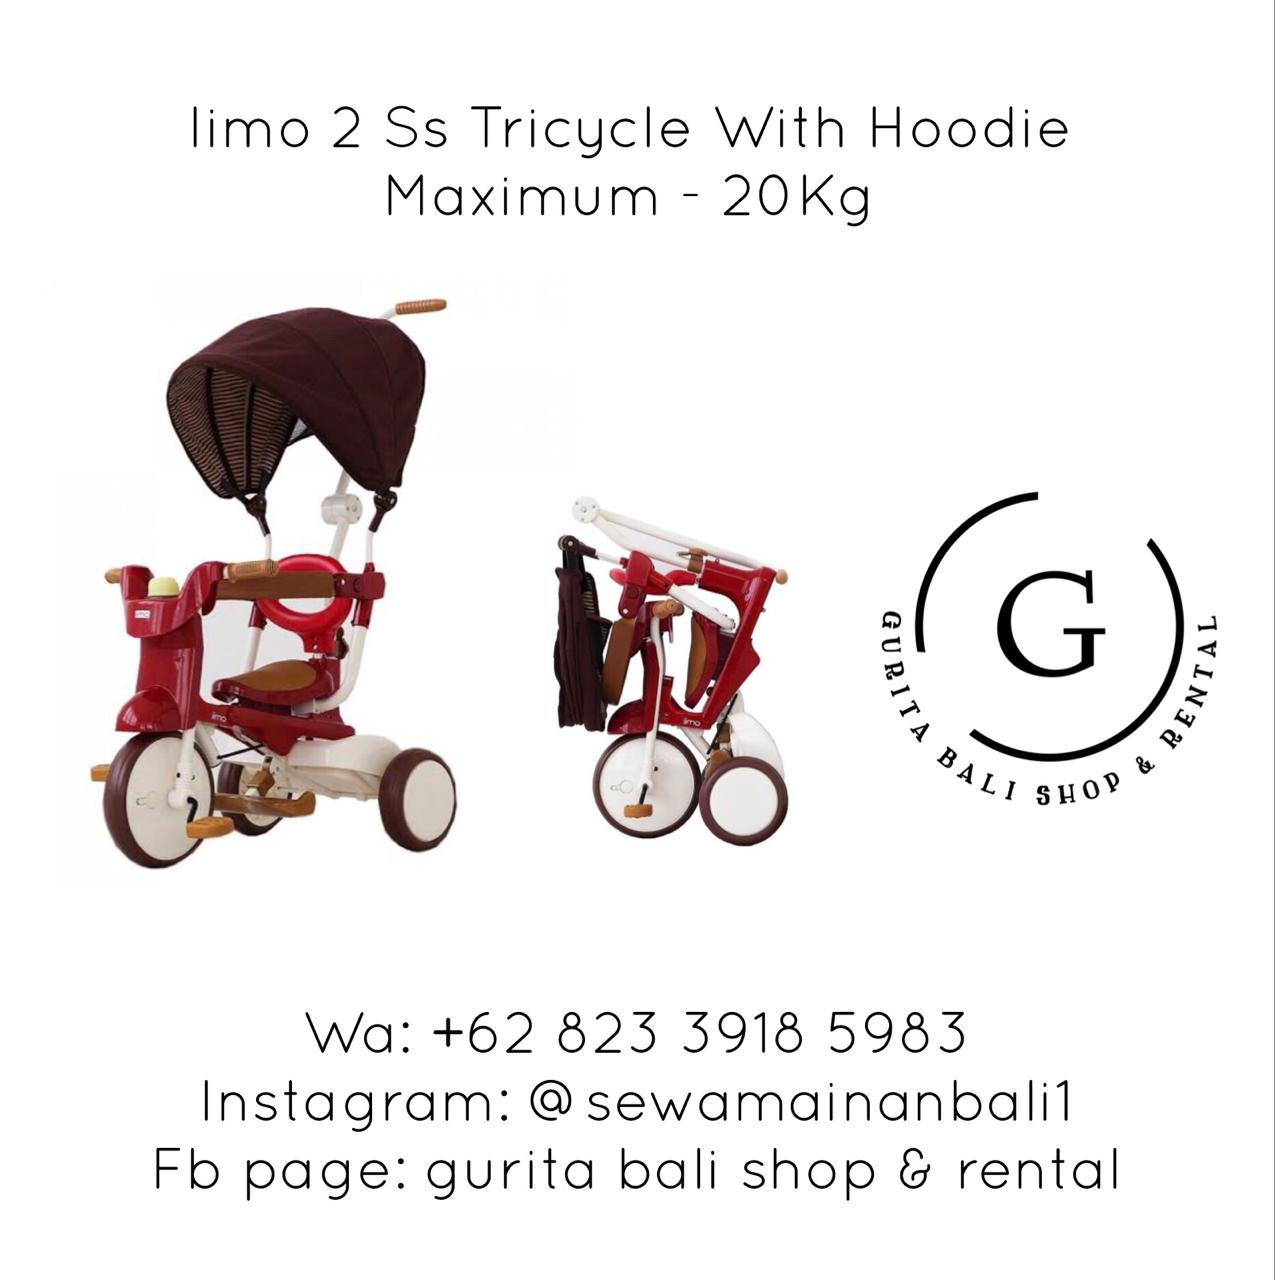 IIMO 2 SS TRICYCLE WITH HOODIE